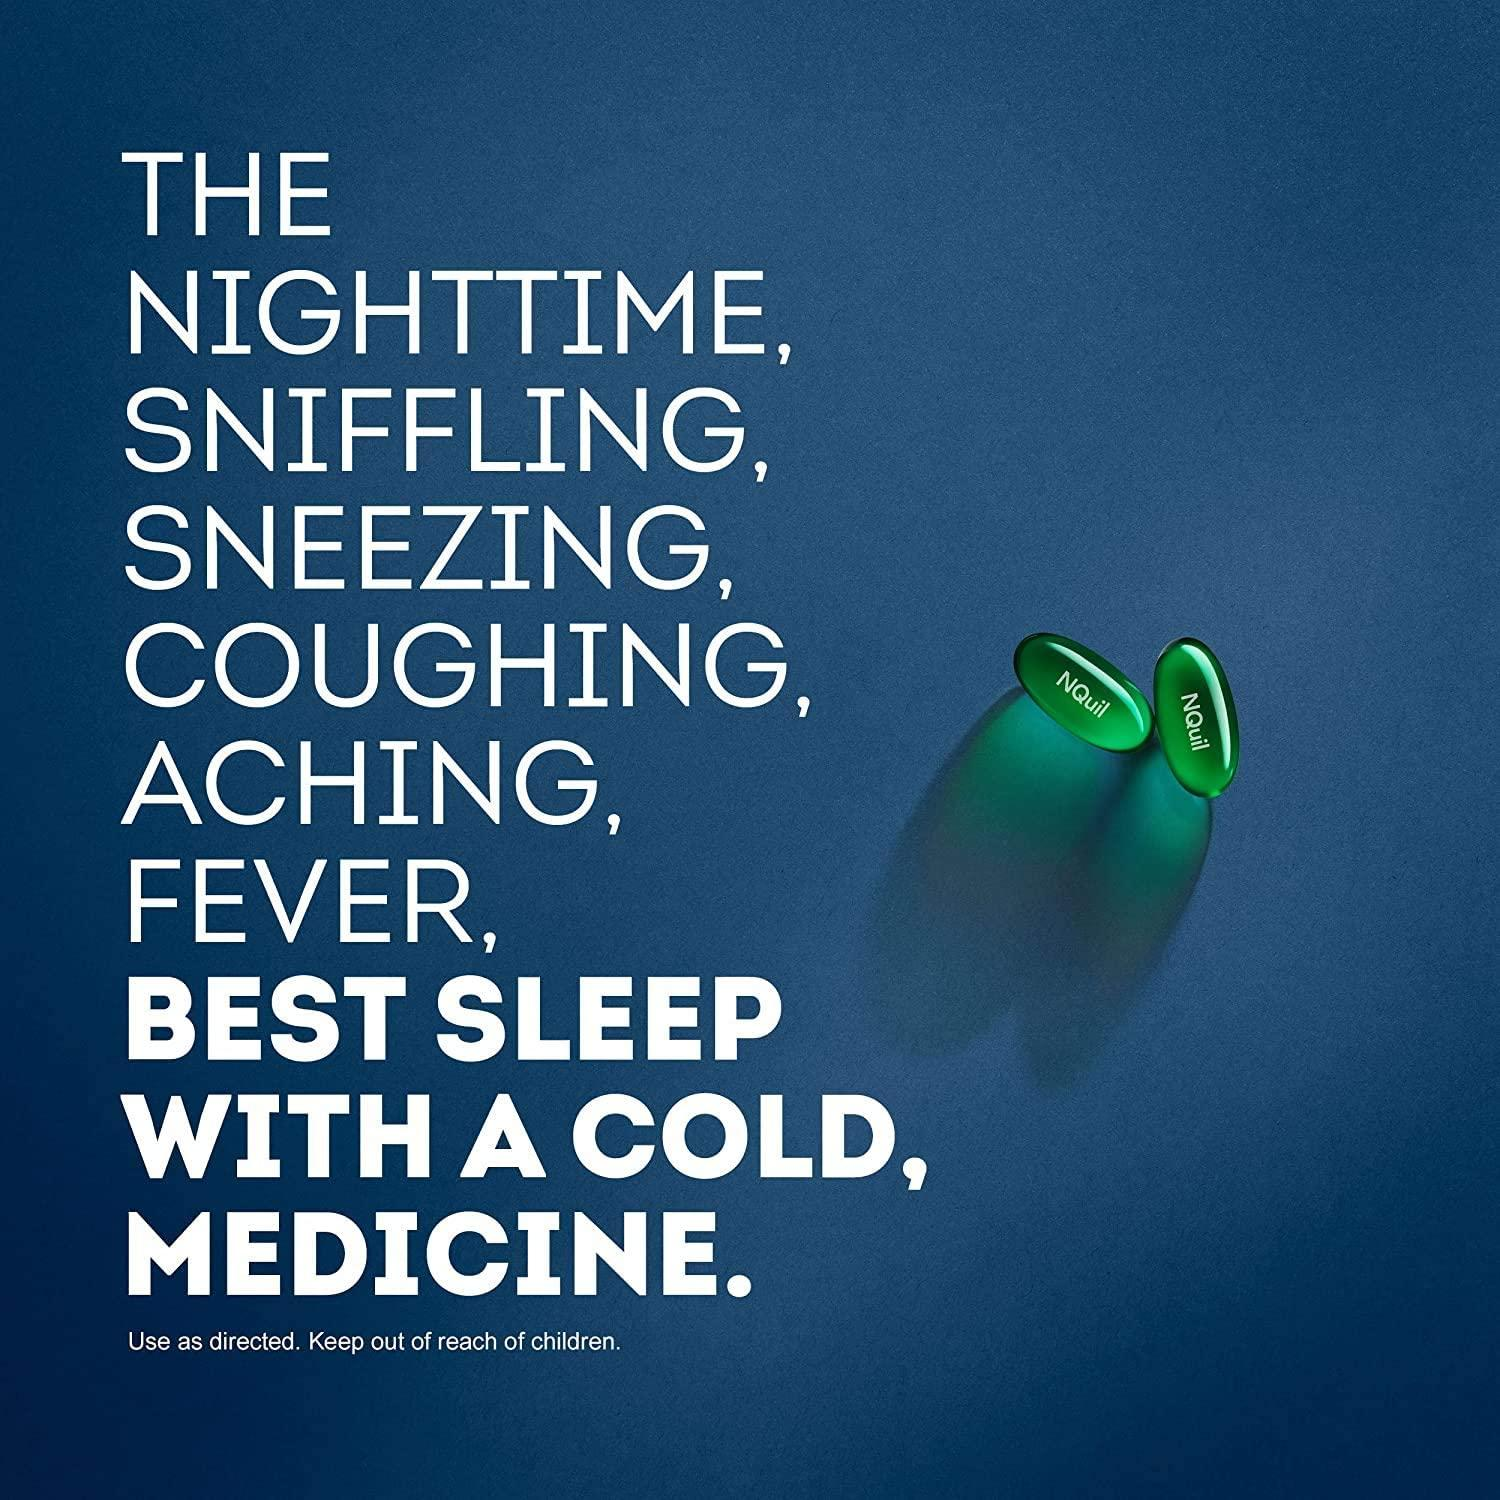 Vicks NyQuil Cold and Flu Multi-Symptom Relief, Nighttime, Sore Throat, Fever, and Congestion Relief, 8 LiquiCaps